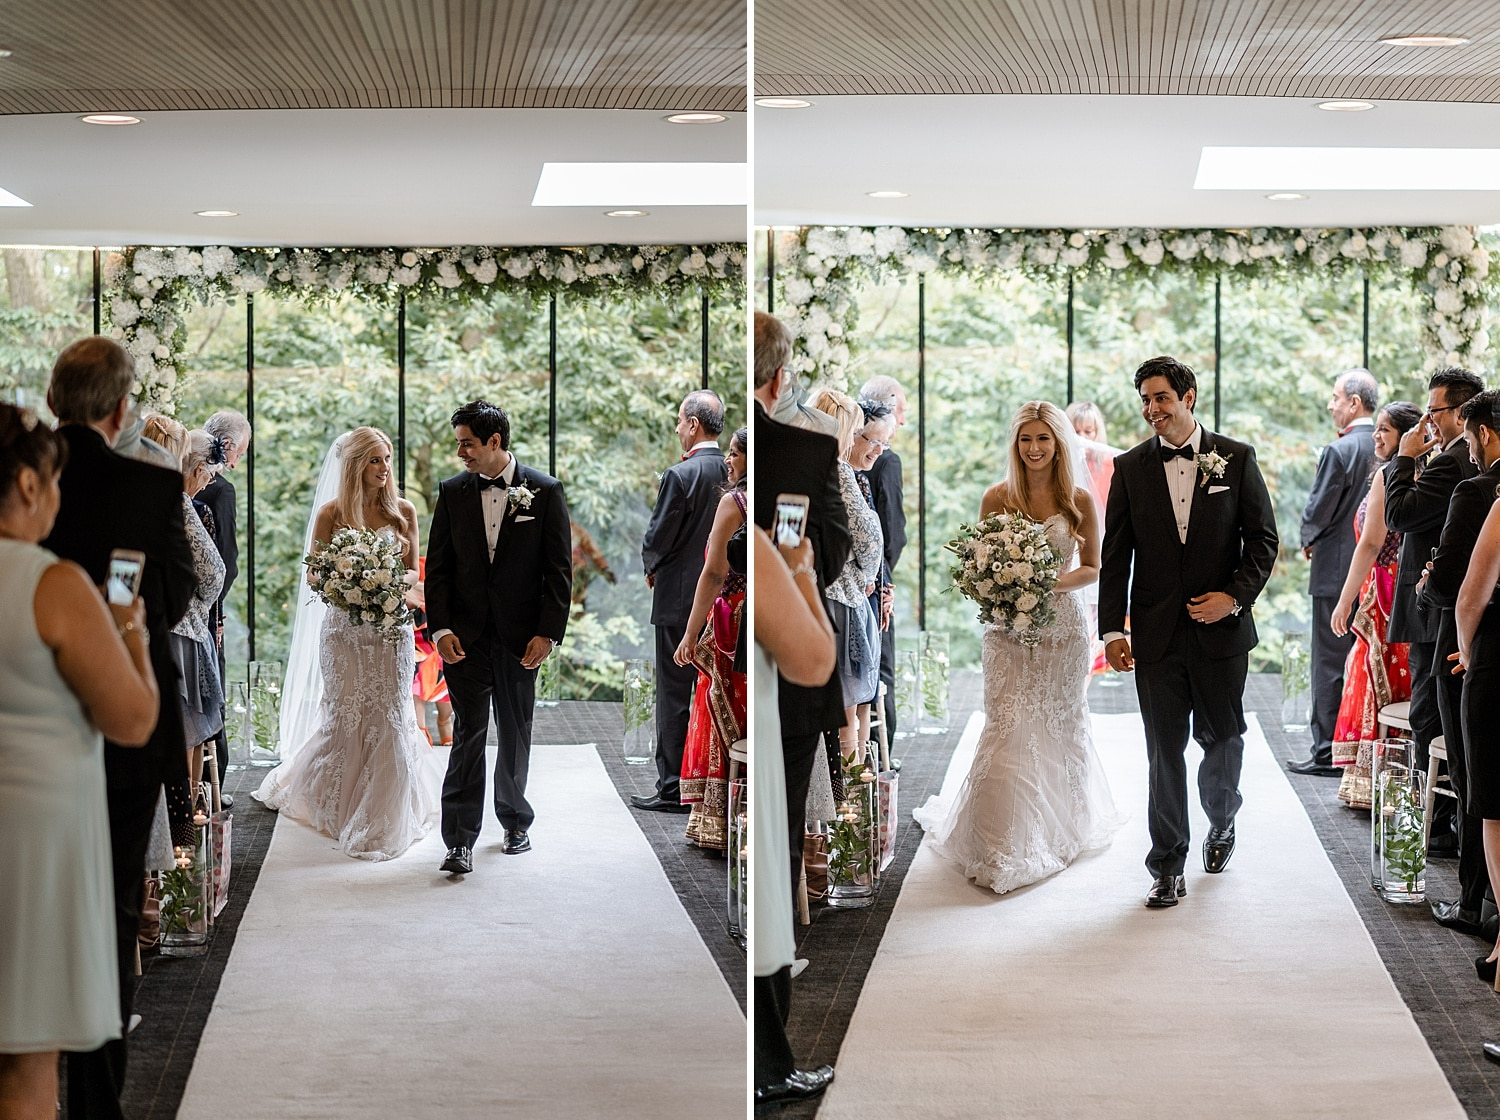 Bride and groom walks down aisle as married couple